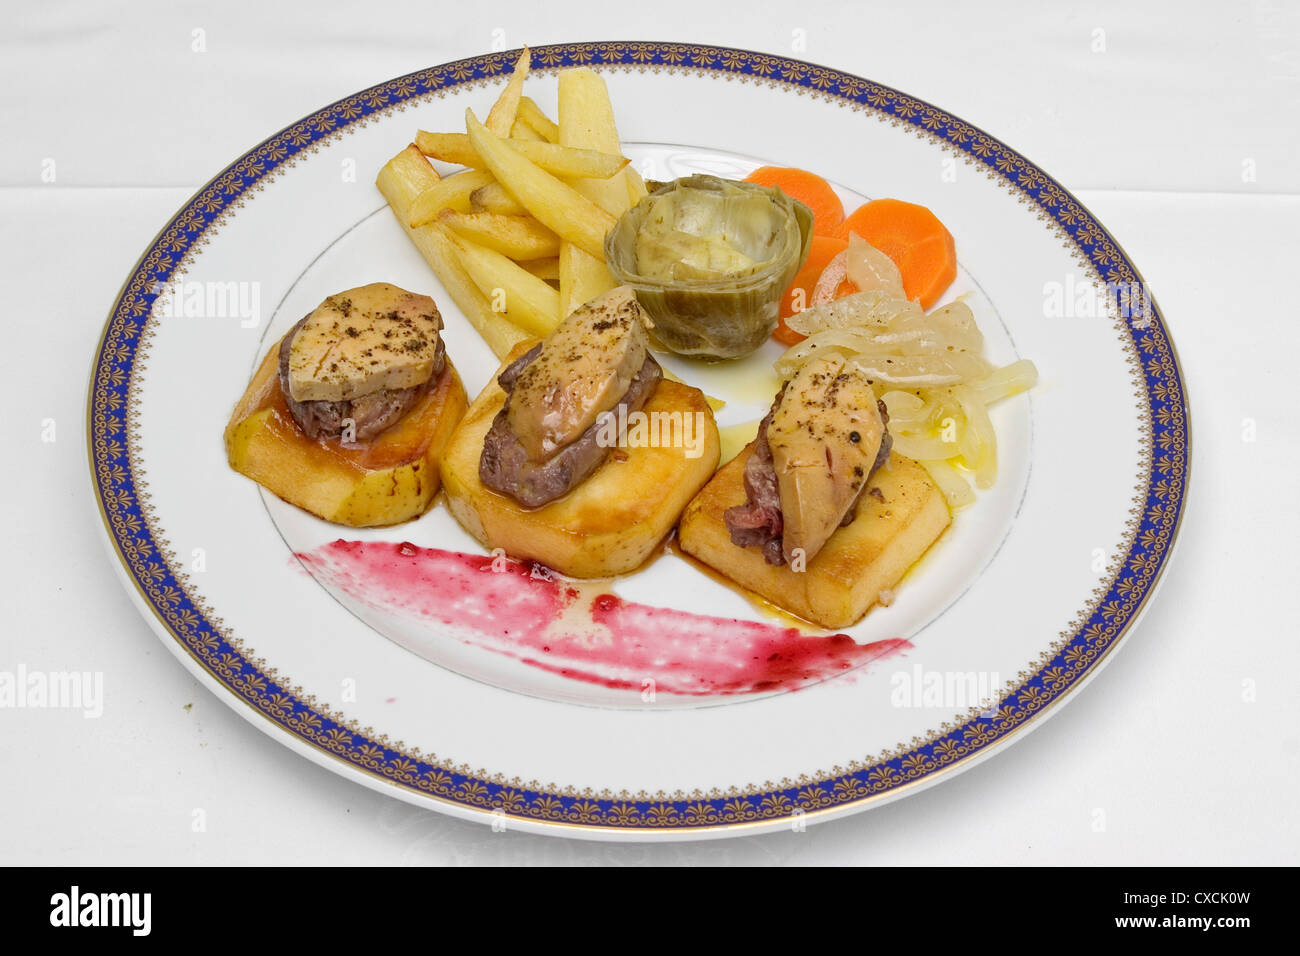 Tapa of sirloin of venison with foie gras - Stock Image